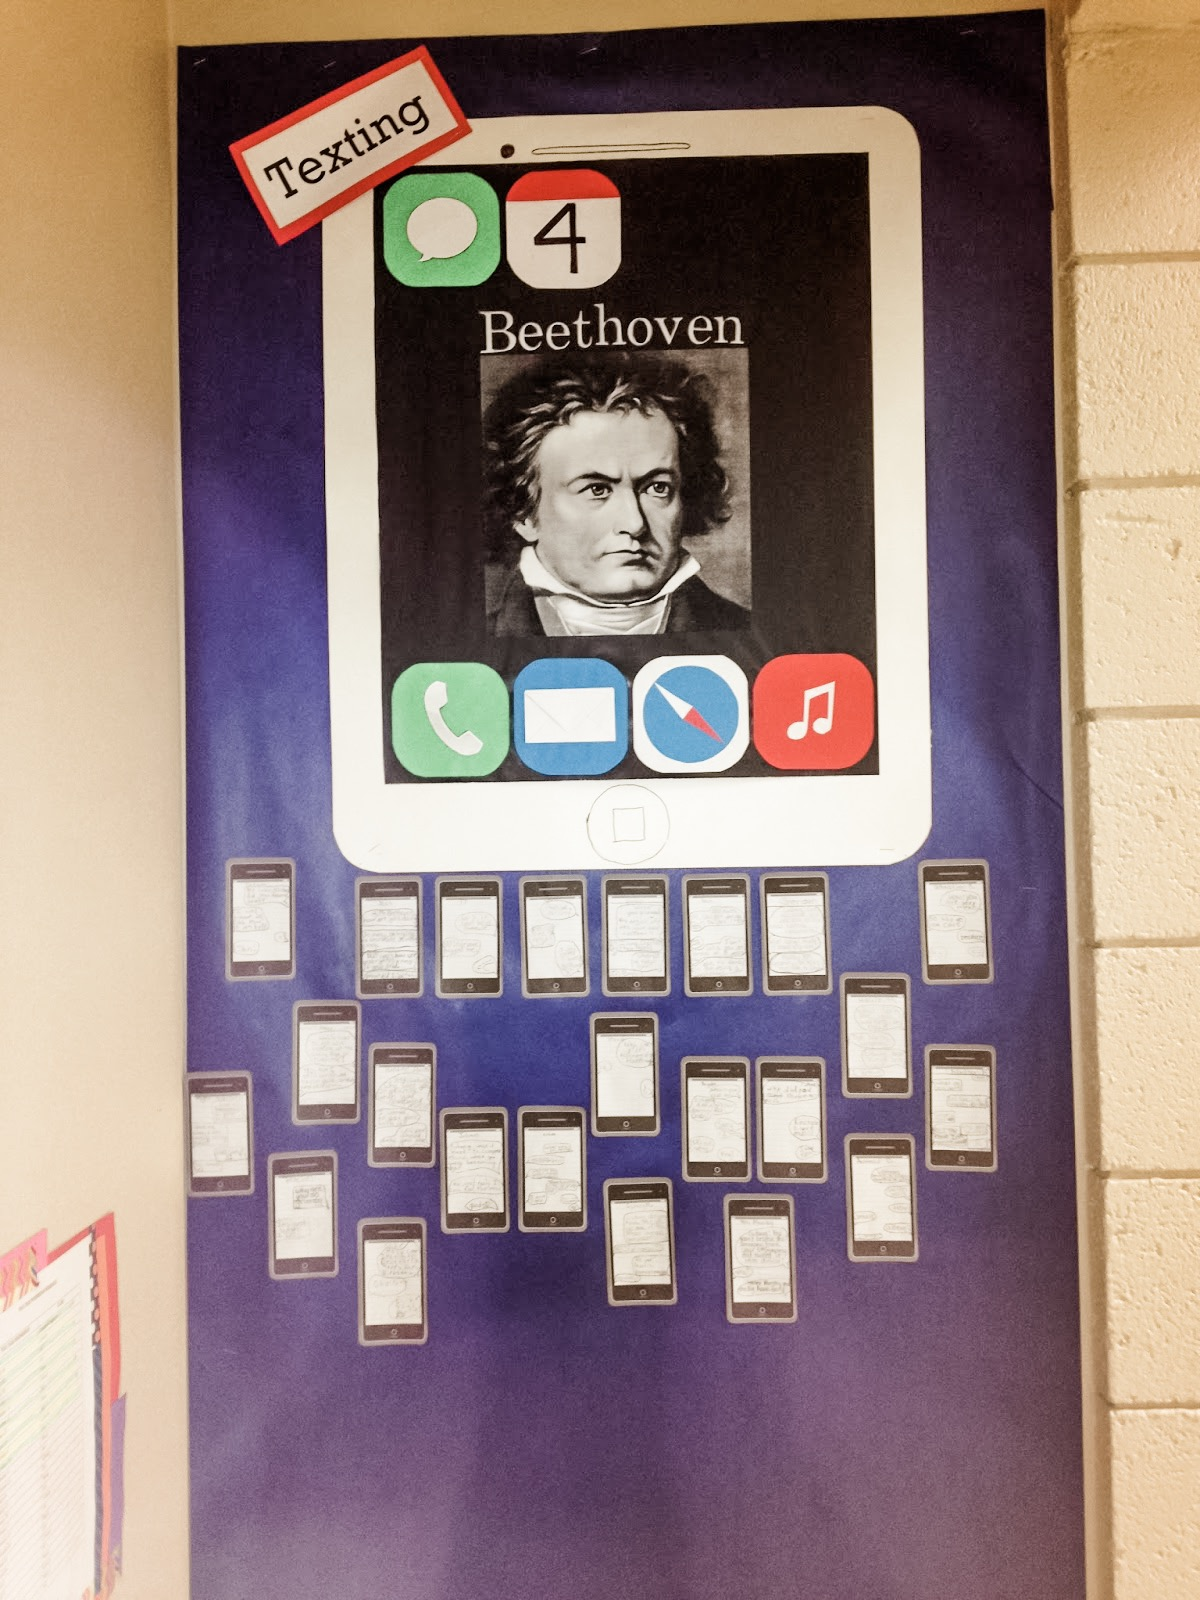 Texting Beethoven